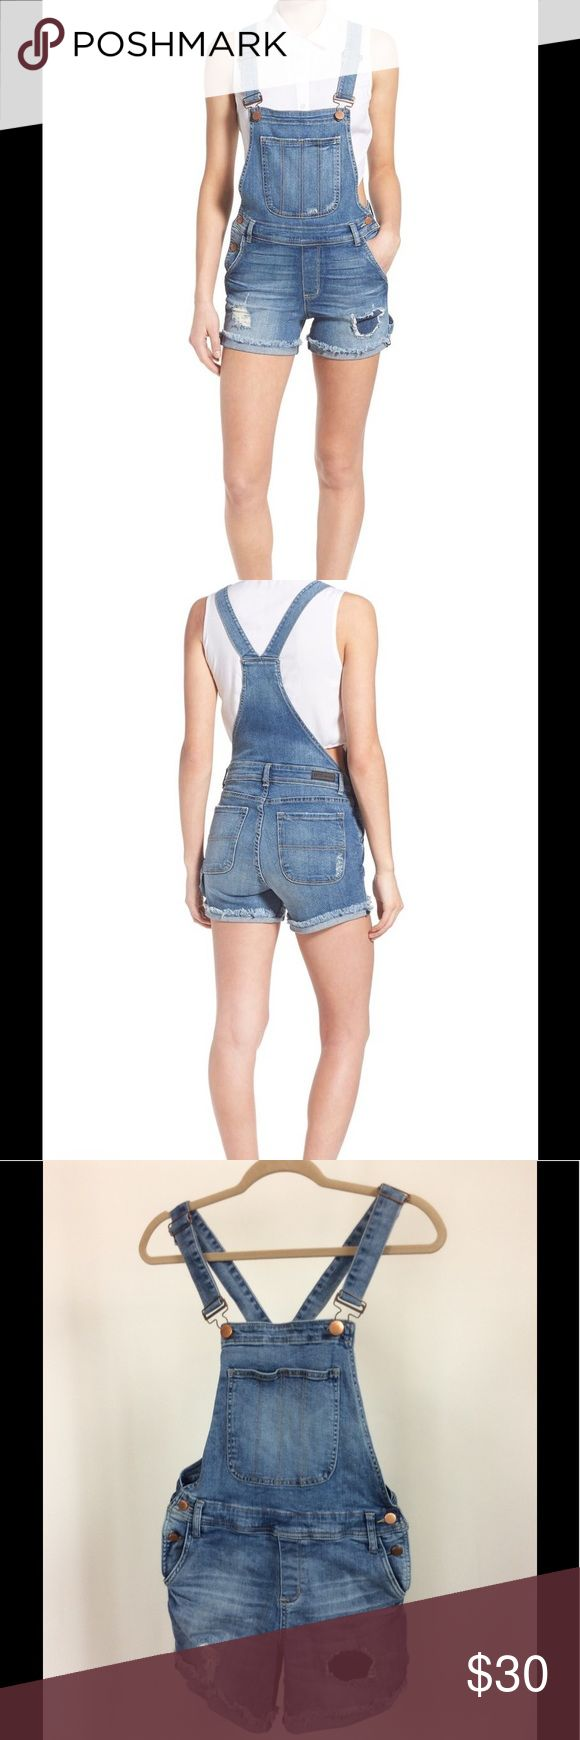 "STS Blue Distressed Short Overalls, Shortalls STS Blue distressed short overalls.  Size 5 (Description says 6, because ""5"" isn't given as an option) 15"" waist, 9"" rise, 5"" inseam. 98% cotton, 2% spandex. Stretch-denim cutoff overalls feature a traditional bib-and-brace front and v-back design with distressed threadbare patches adding a lived-in feel.  Adjustable shoulder straps with buckle closures, two-button side closures, four-pocket style, bib pocket.  In very good used condition! STS…"